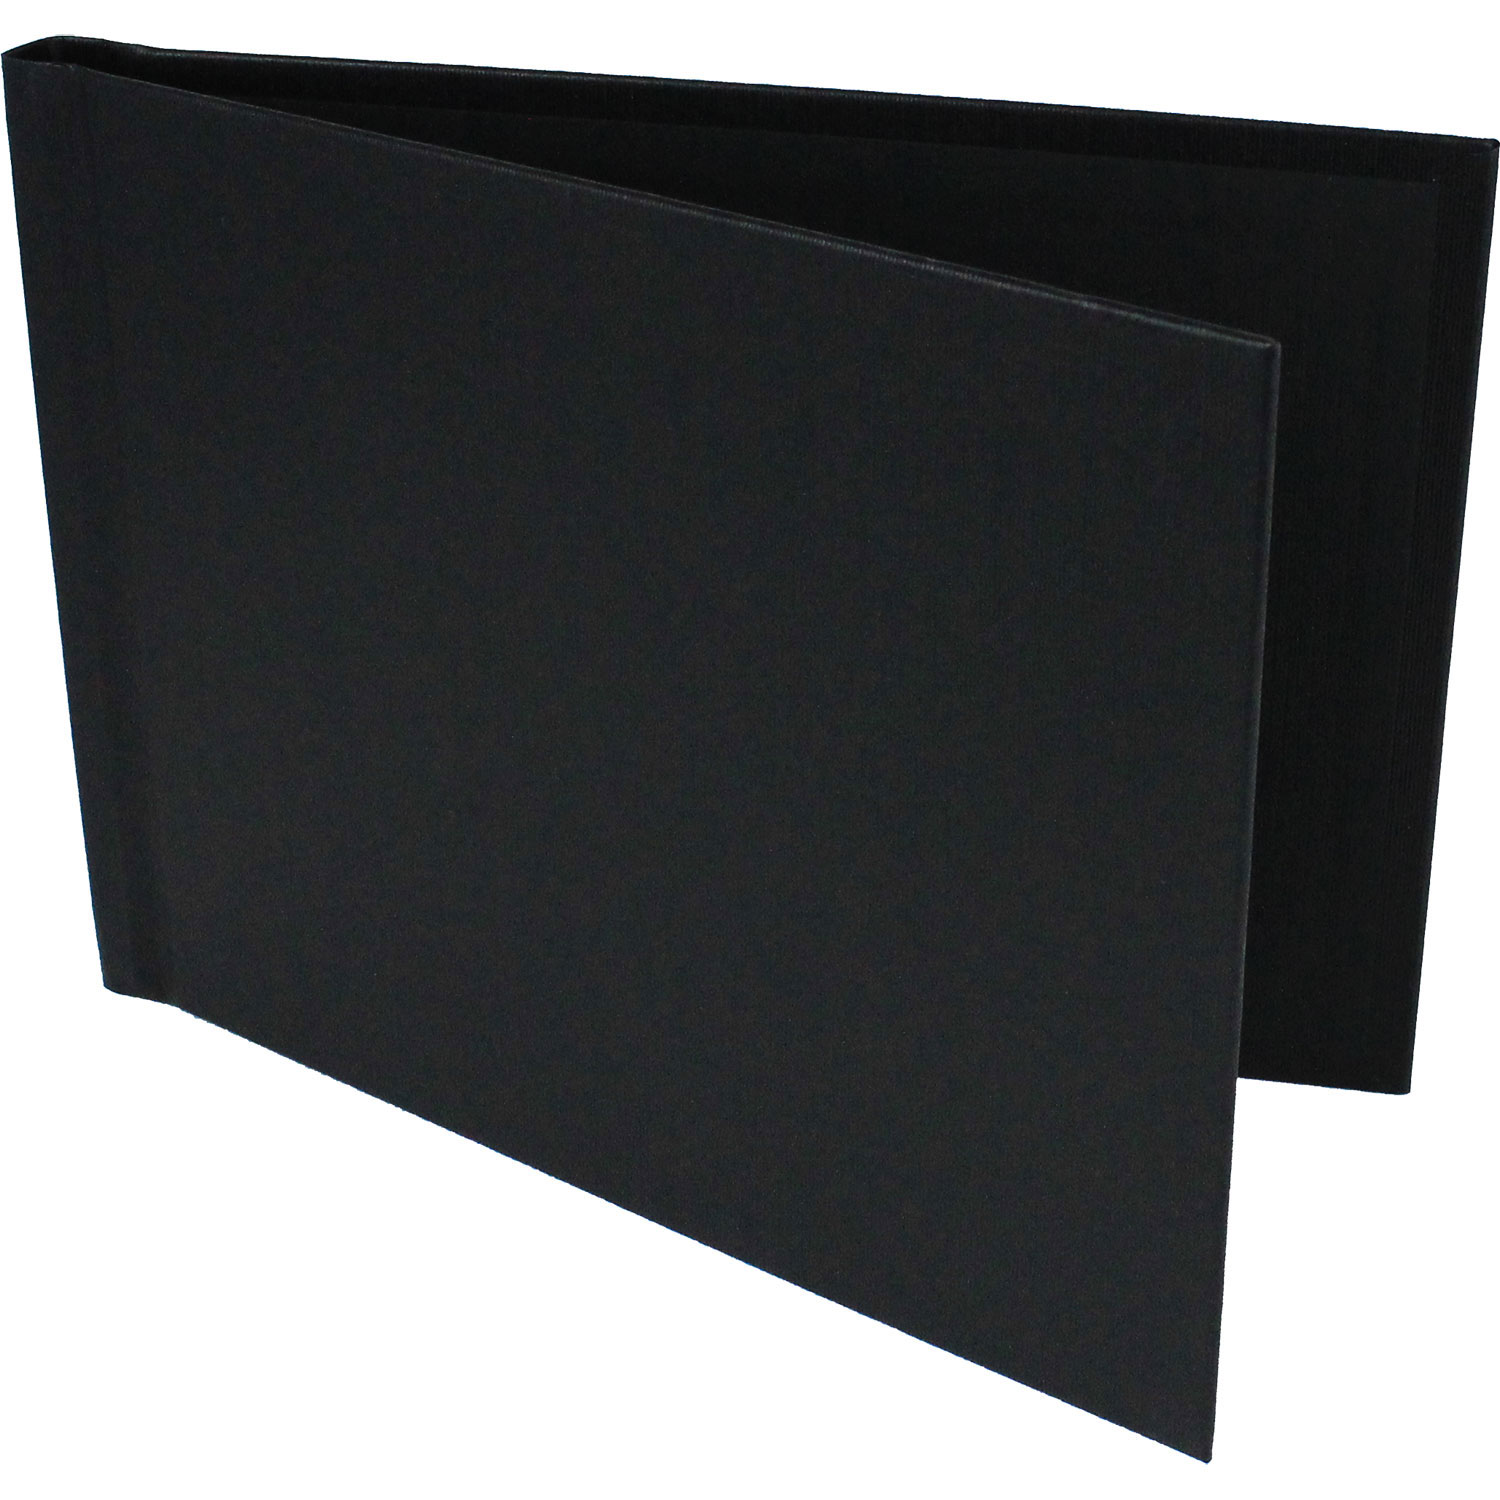 Impressbind A4 Landscape Black Hard Covers 3.5mm (10)